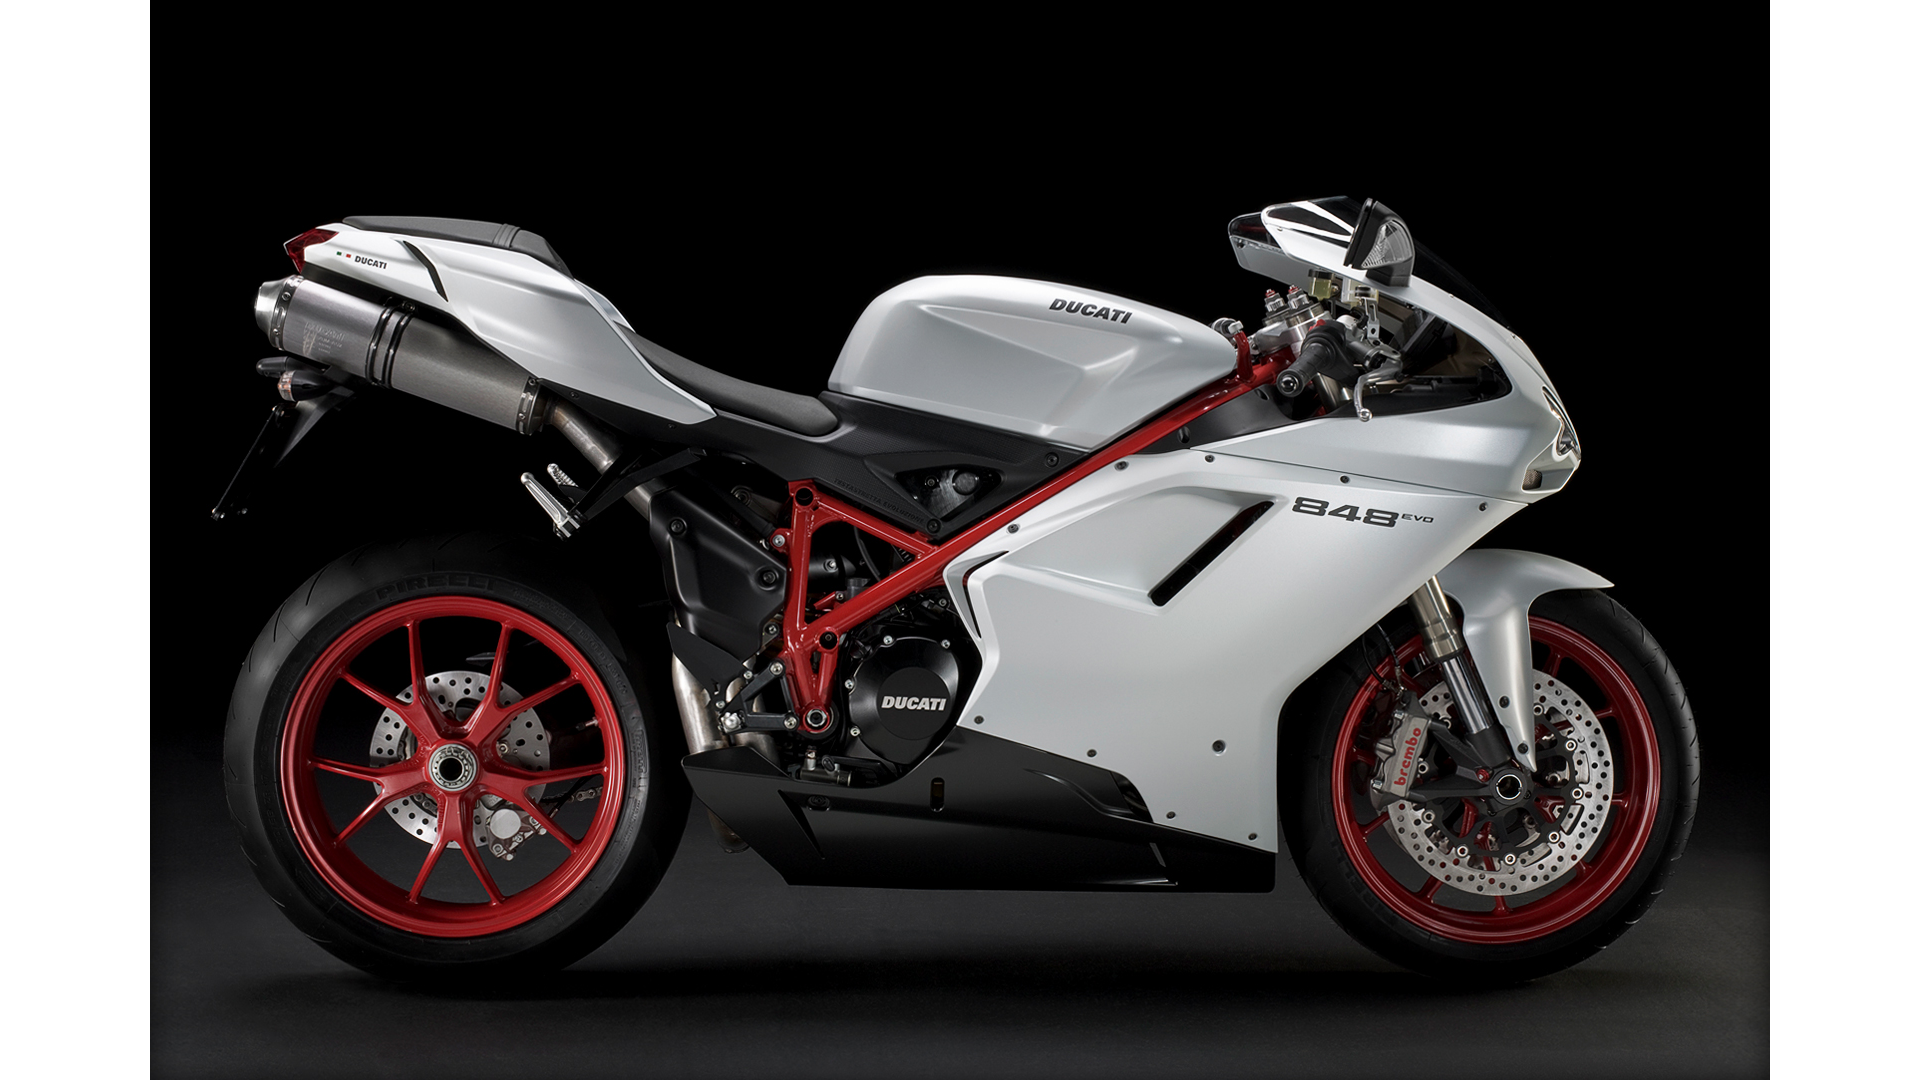 2012 Ducati Superbike 848 EVO | Top Speed. »